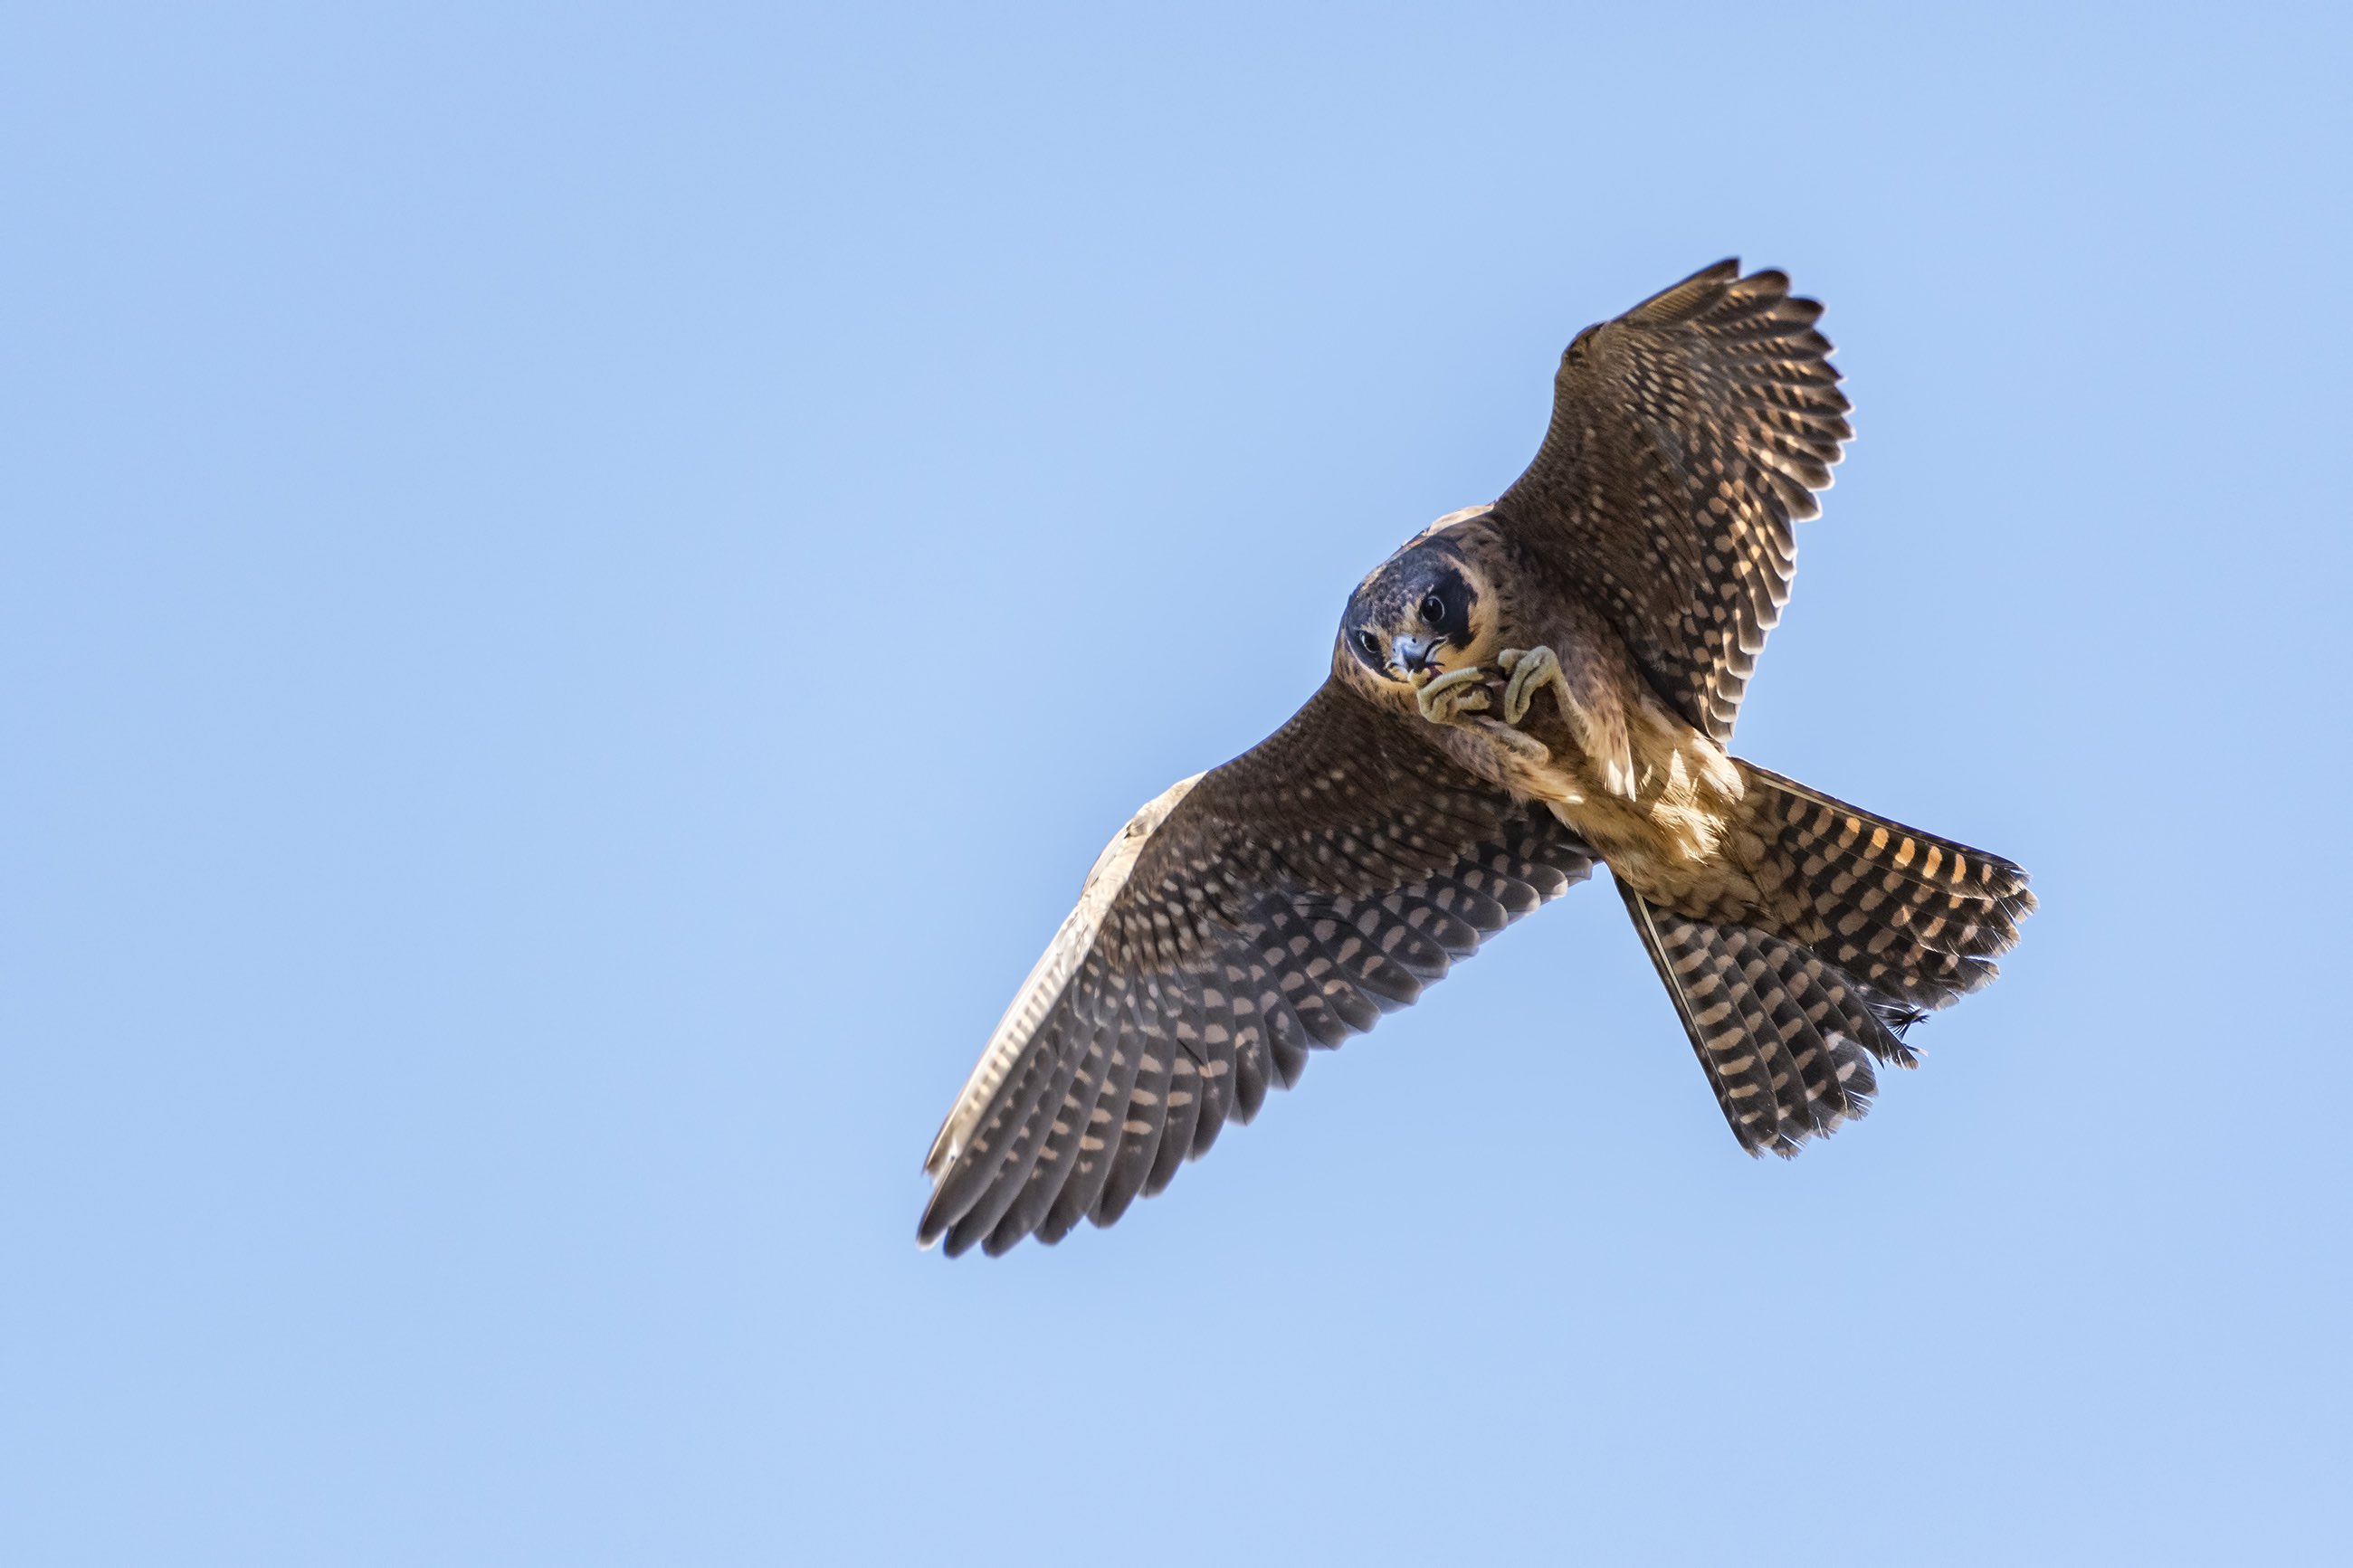 Down the wind: the ancient art of falconry put to a new use